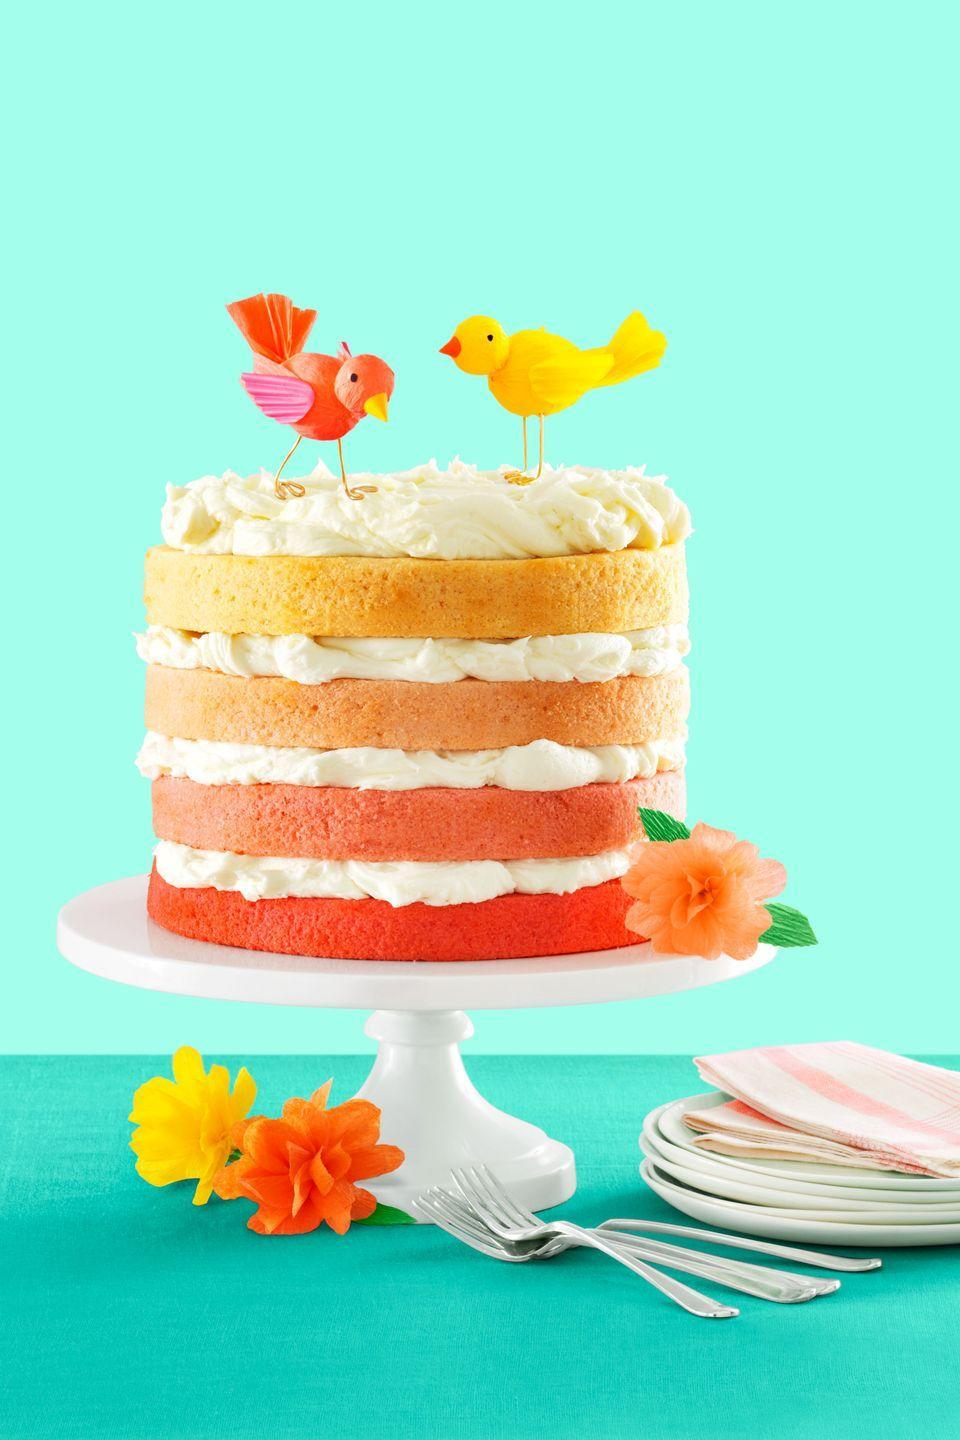 """<p>This colorful springtime confection is a showstopper.<br></p><p><a href=""""https://www.womansday.com/food-recipes/food-drinks/recipes/a54430/pink-ombre-cake-with-buttercream-recipe/"""" rel=""""nofollow noopener"""" target=""""_blank"""" data-ylk=""""slk:Get the recipe for Pink Ombré Cake with Vanilla Buttercream."""" class=""""link rapid-noclick-resp""""><em>Get the recipe for Pink Ombré Cake with Vanilla Buttercream. </em></a></p>"""